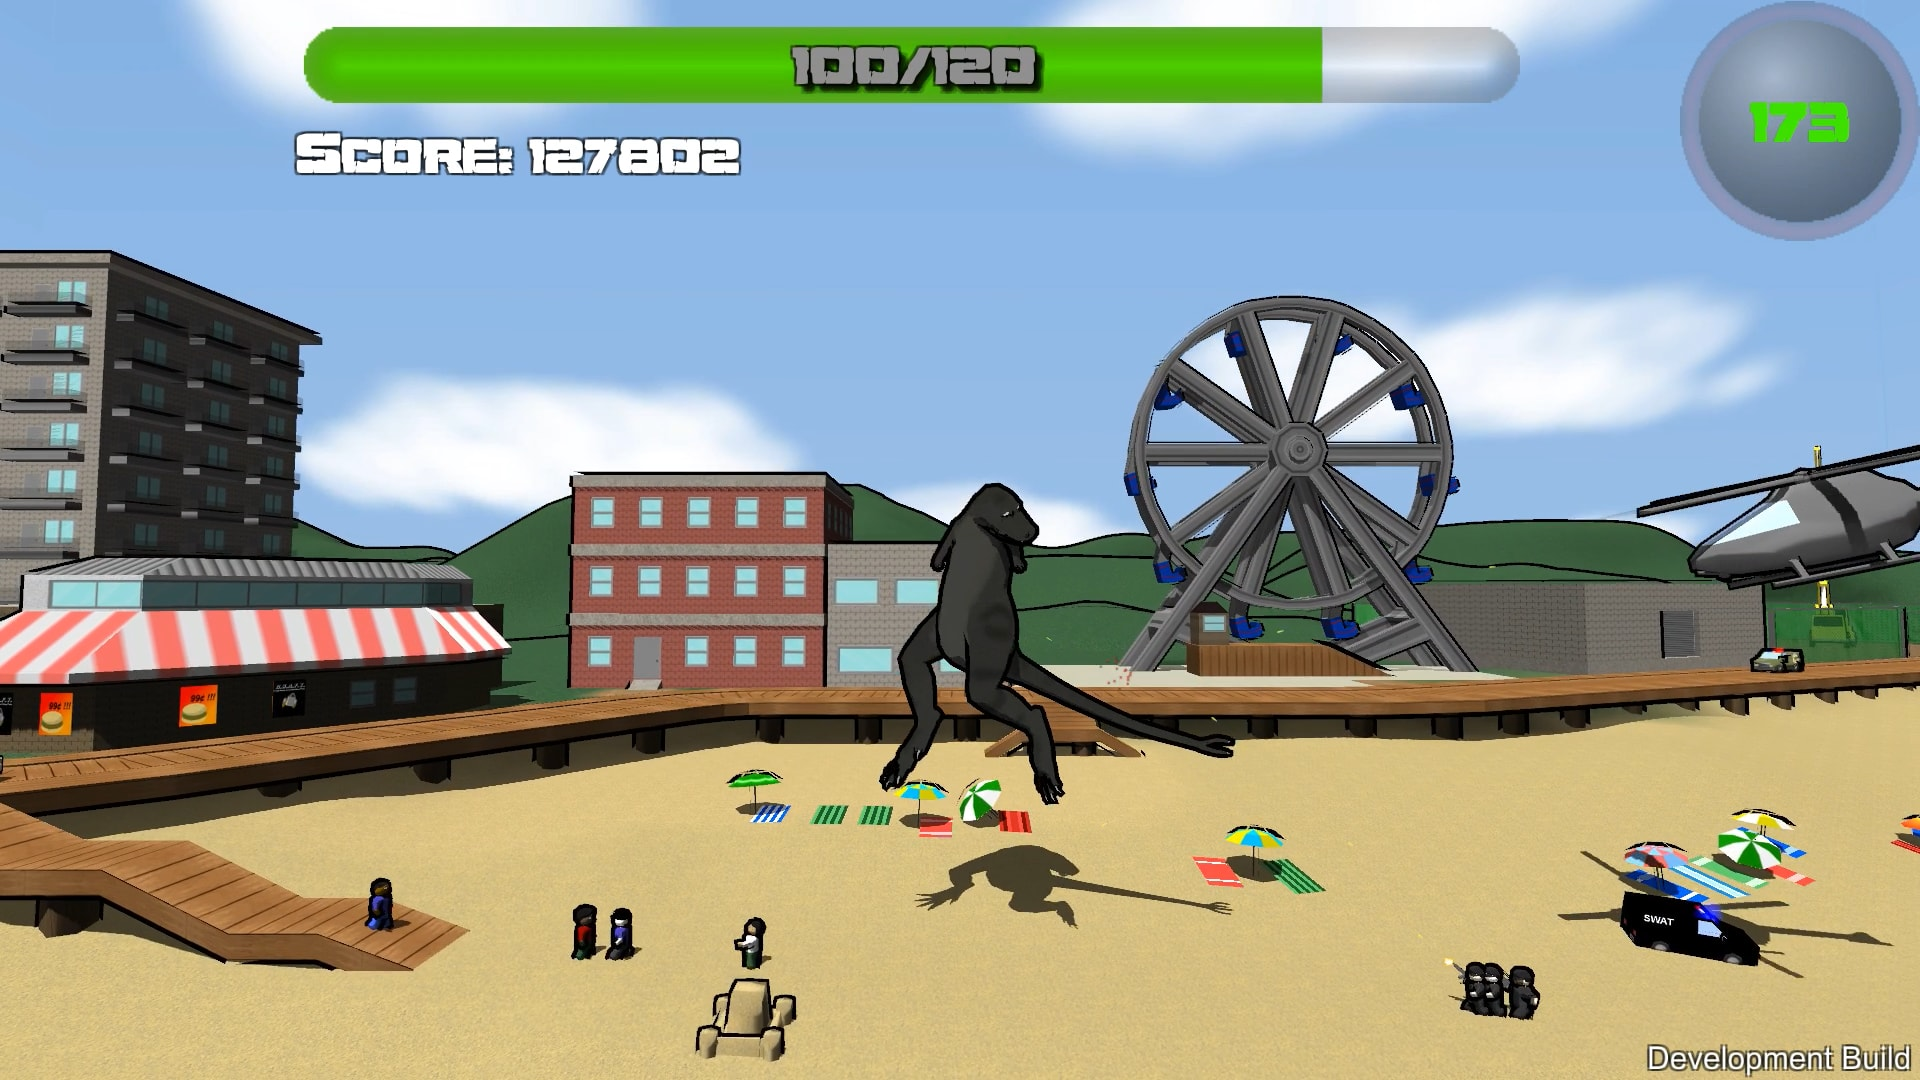 Beach level screenshot